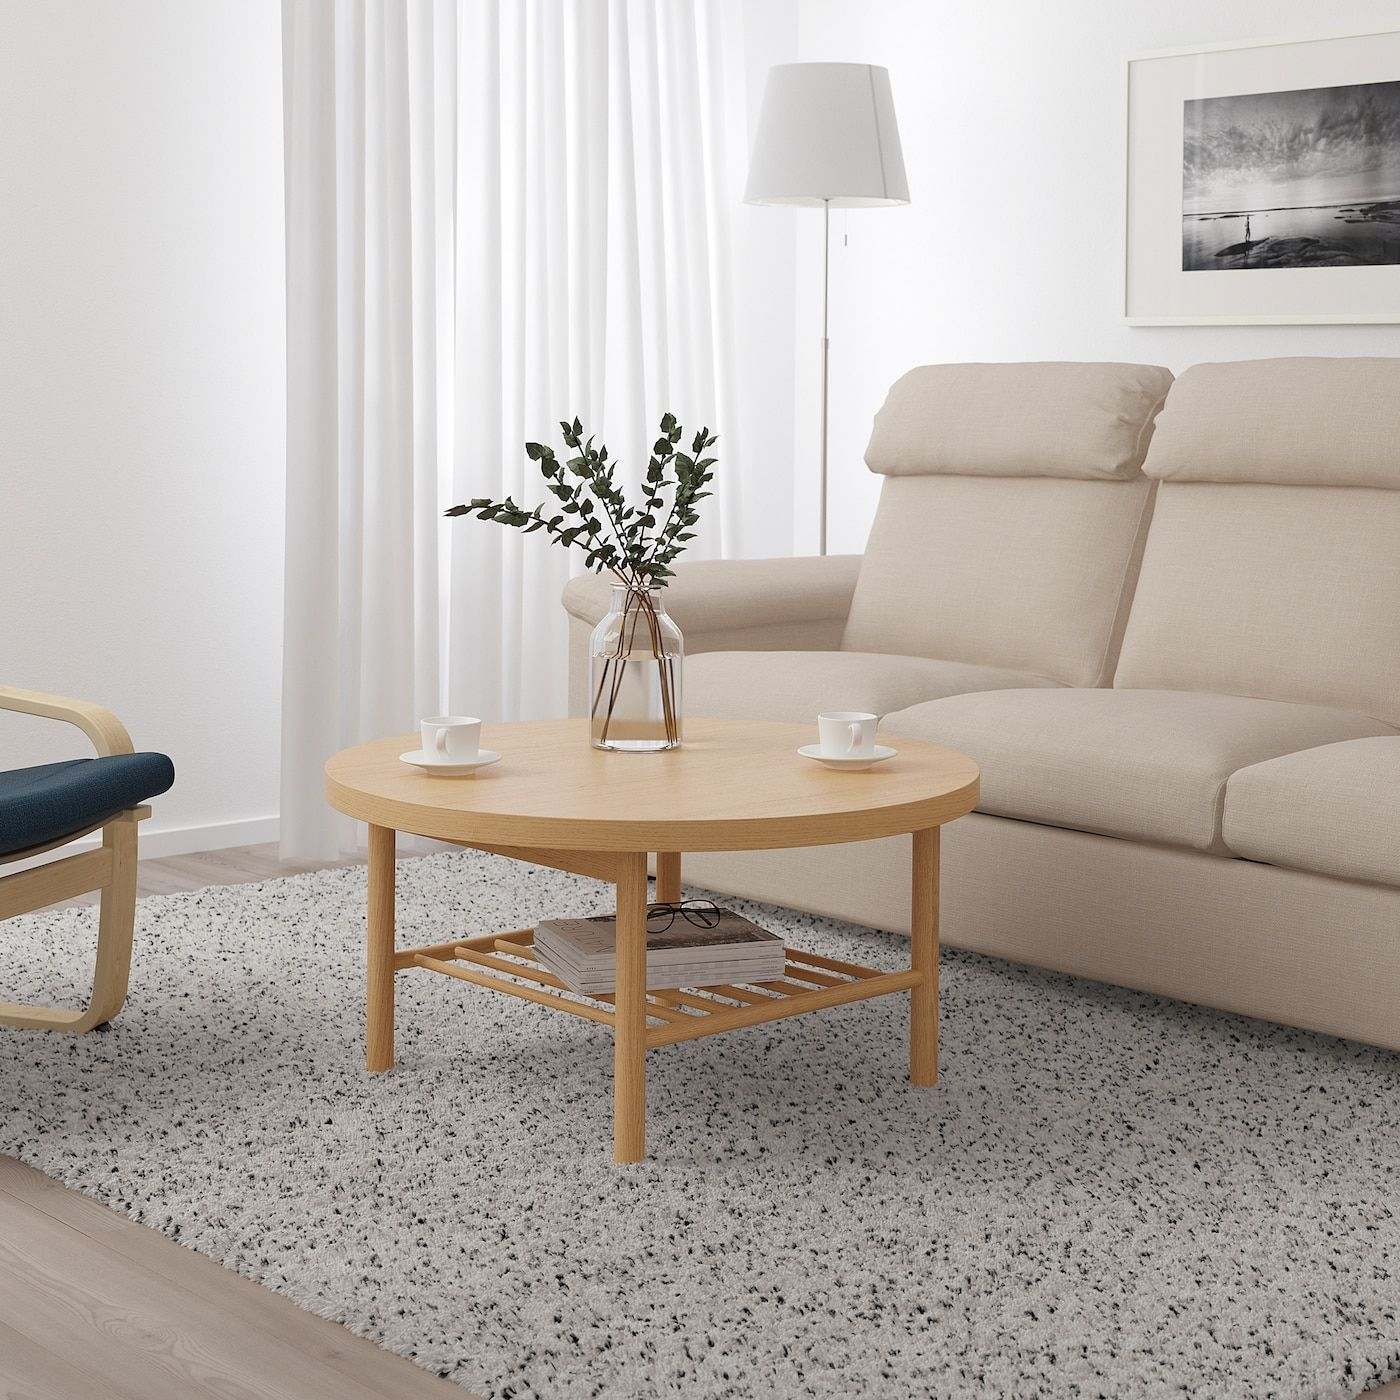 Listerby Coffee Table White Stained Oak 35 3 8